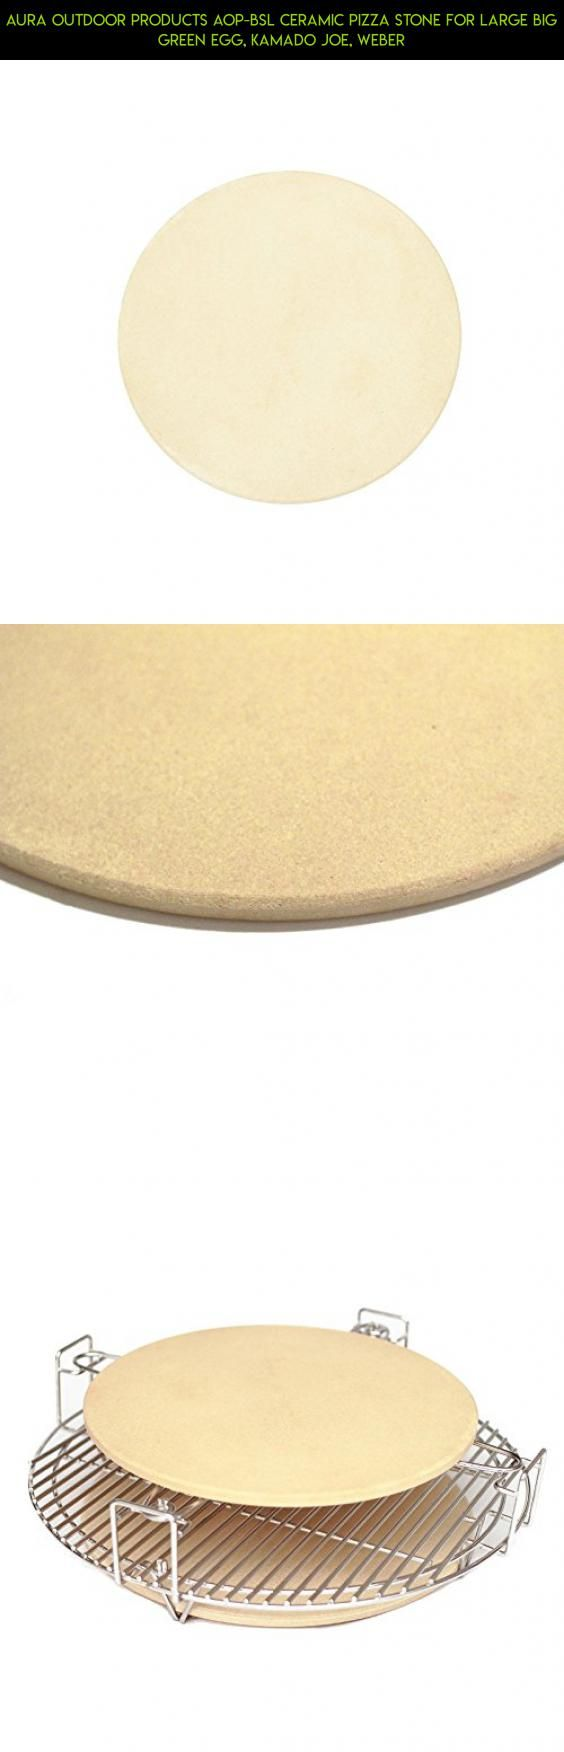 Aura Outdoor Products AOP-BSL Ceramic Pizza Stone for Large Big Green Egg, Kamado Joe, Weber #kit #racing #camera #drone #grills #plans #parts #tech #products #fpv #technology #gadgets #shopping #egg